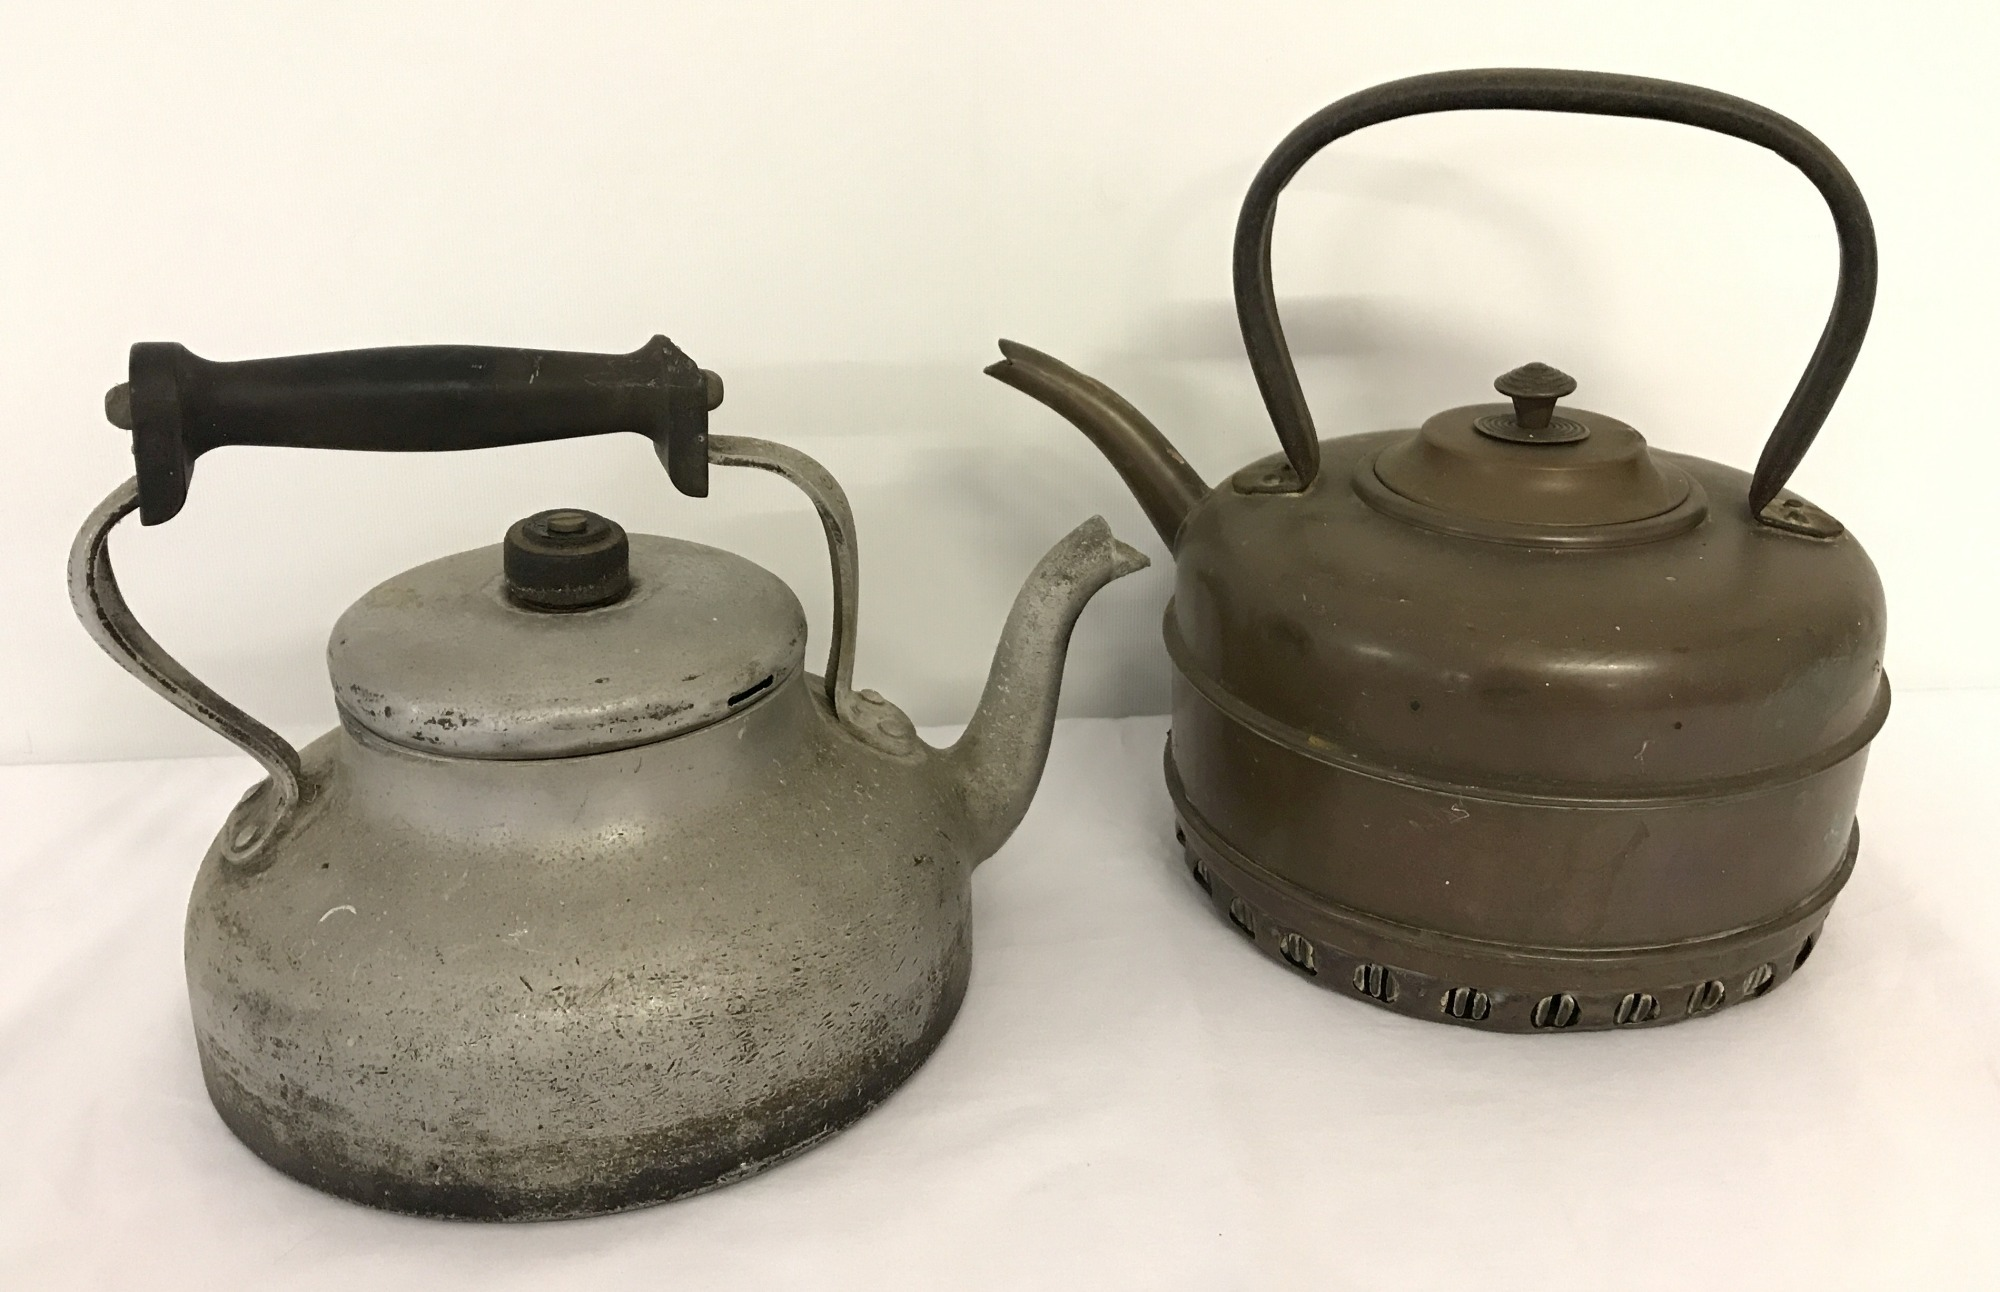 Lot 93 - A vintage Aga aluminium stove top kettle together with a vintage gas stove copper kettle.